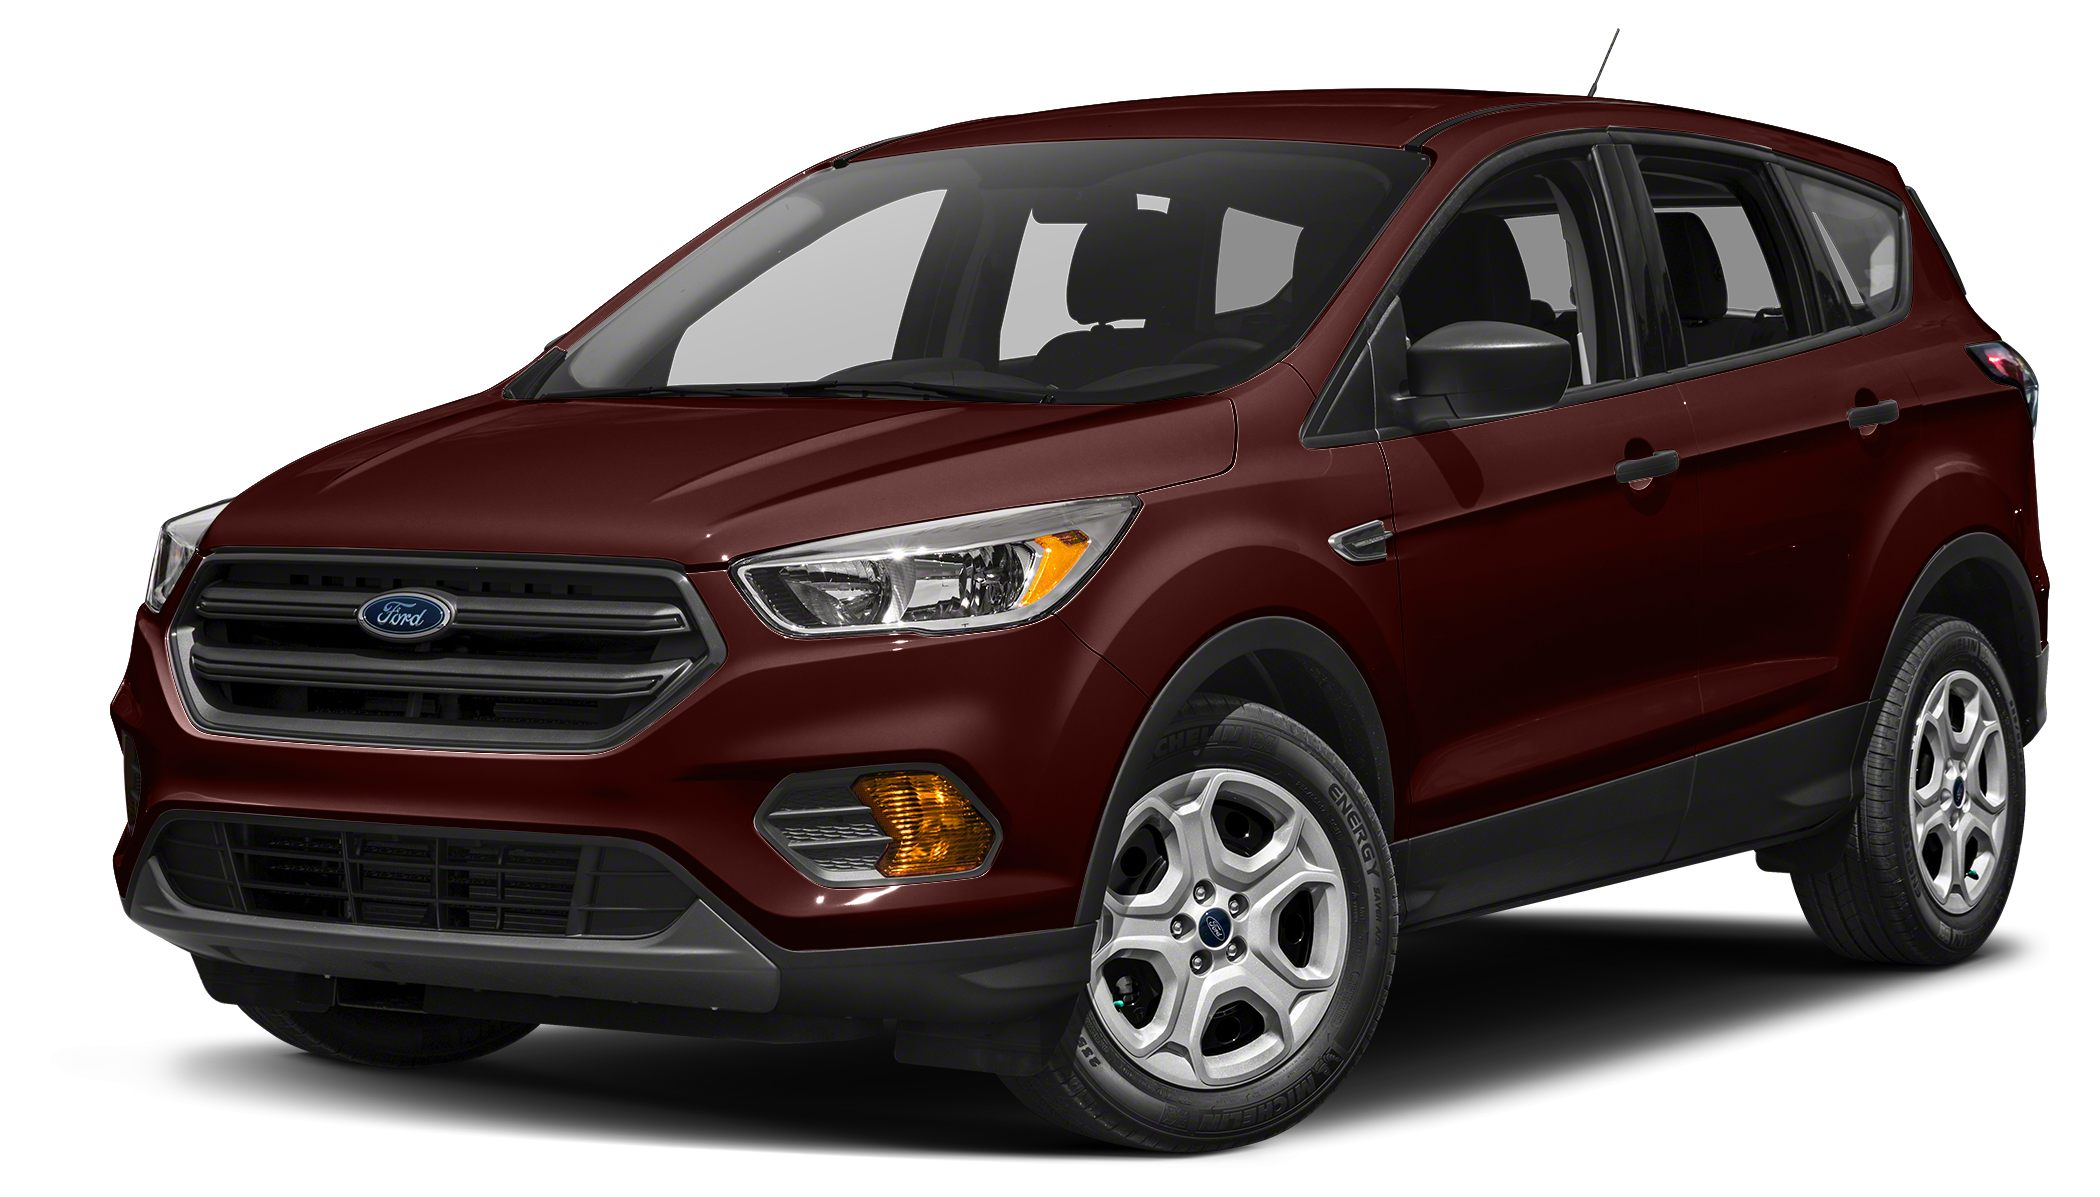 2018 Ford Escape SEL The 2018 Ford Escape is a capable SUV It has versatile seatingcargo combina